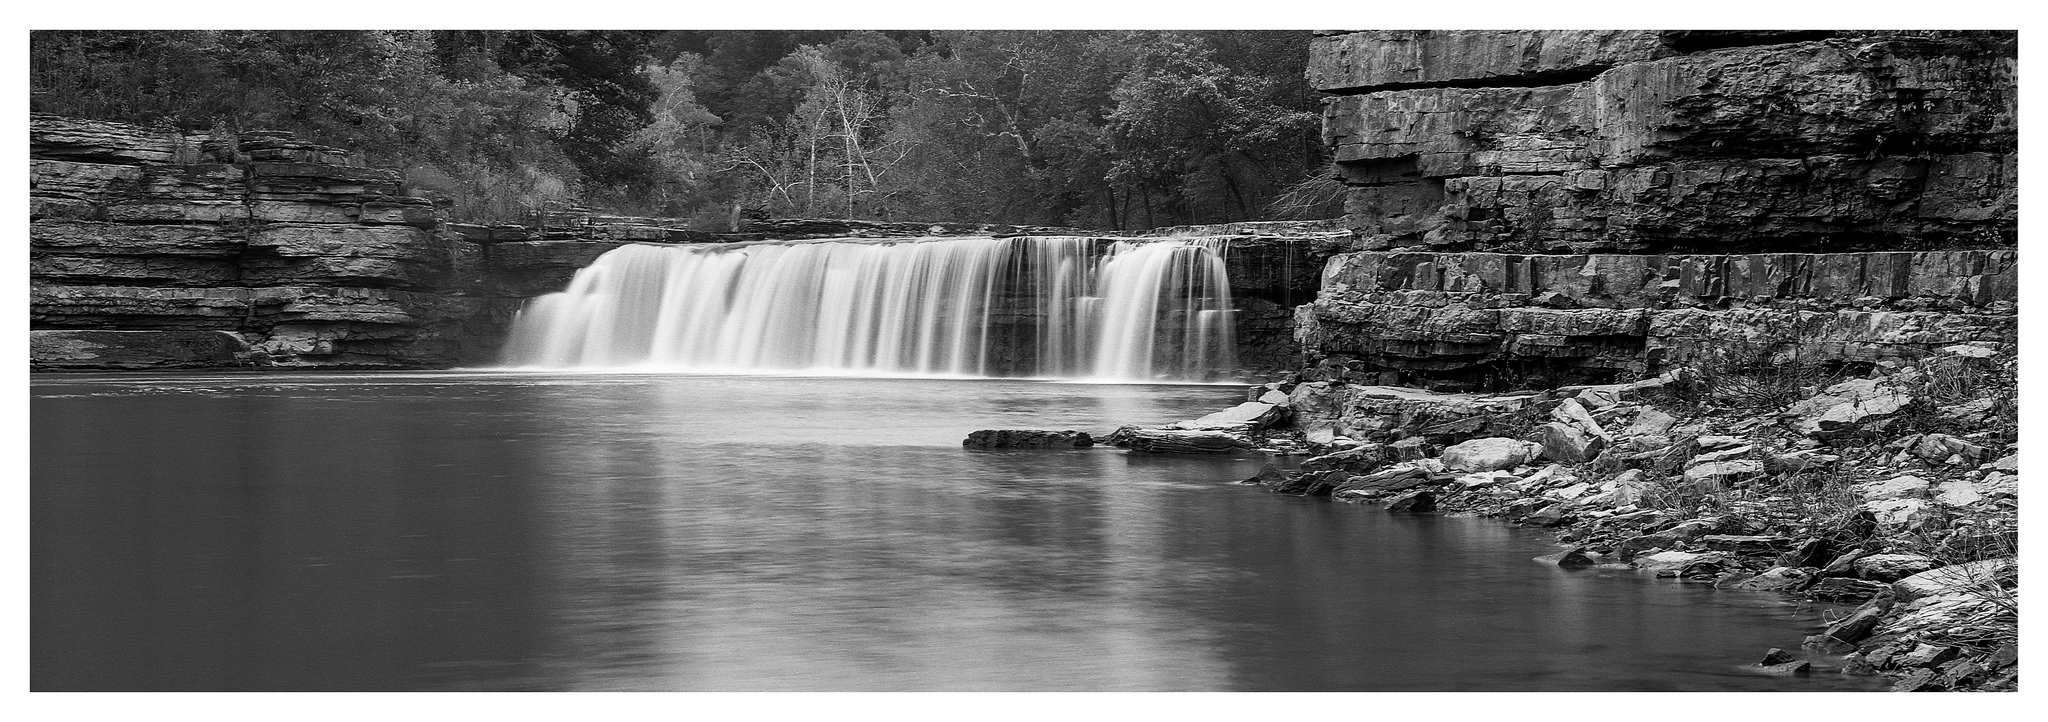 Cataract Lower Falls - Fuji GX617 with ACROS 100 film, long exposure